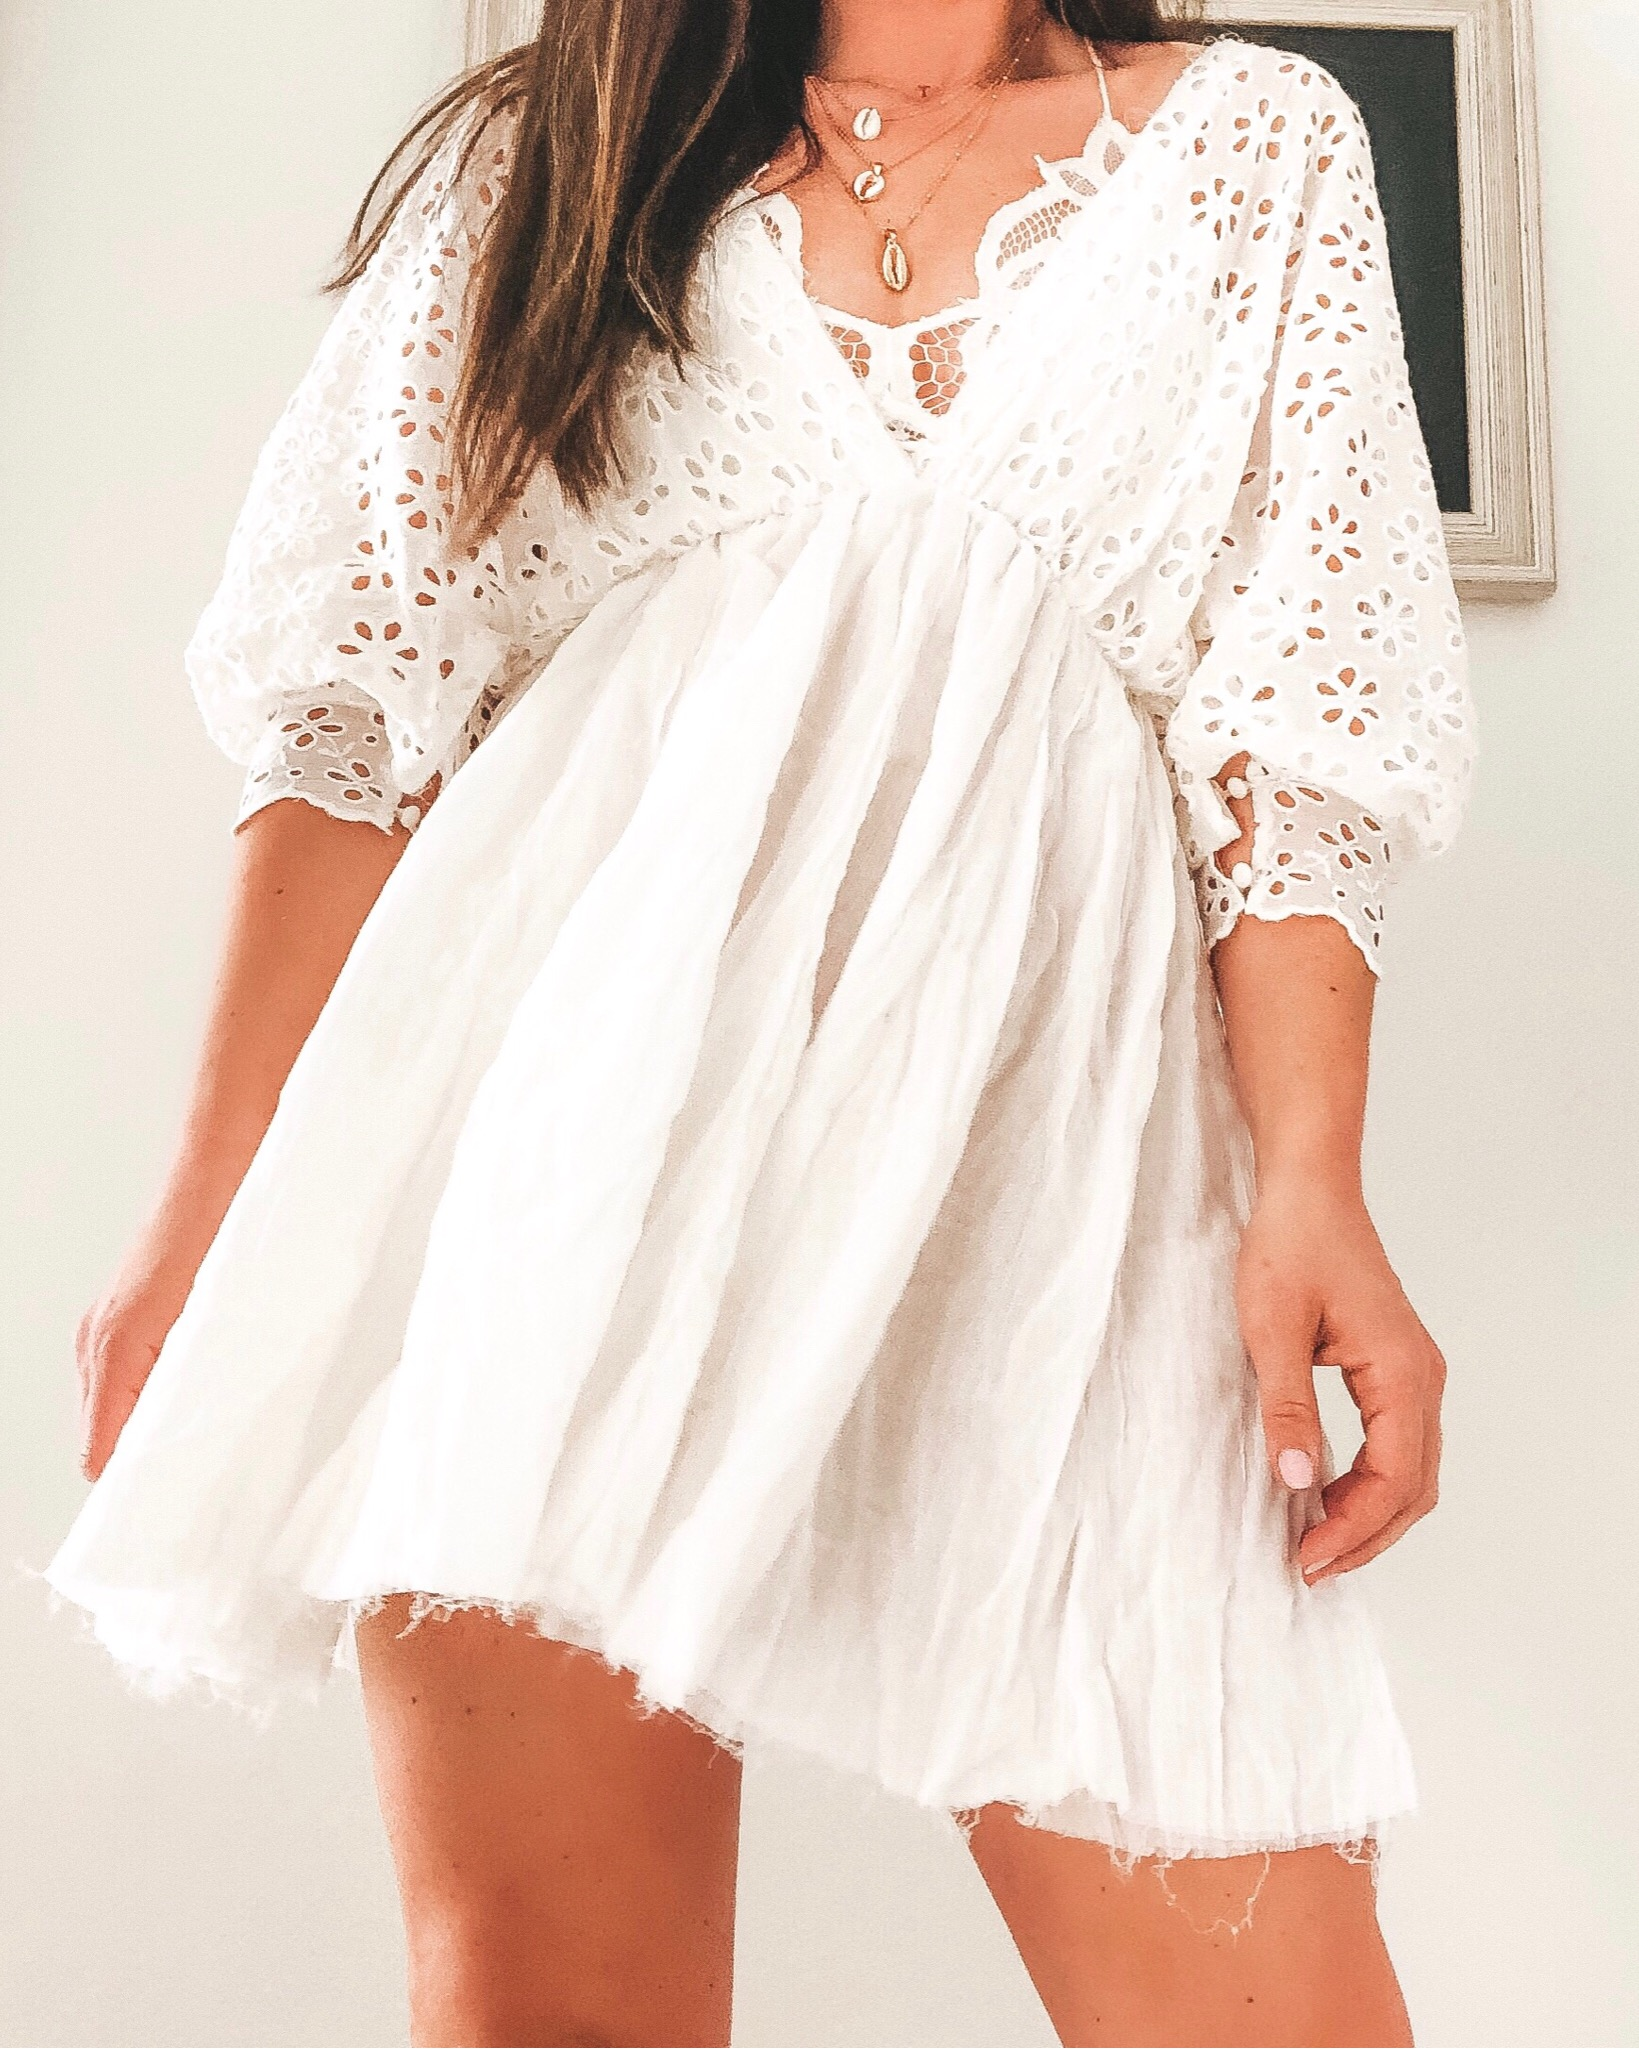 Amazon fashion finds for summer.  10 under $35 amazon women's clothing pieces.  White Free people inspired dress or beach coverup.